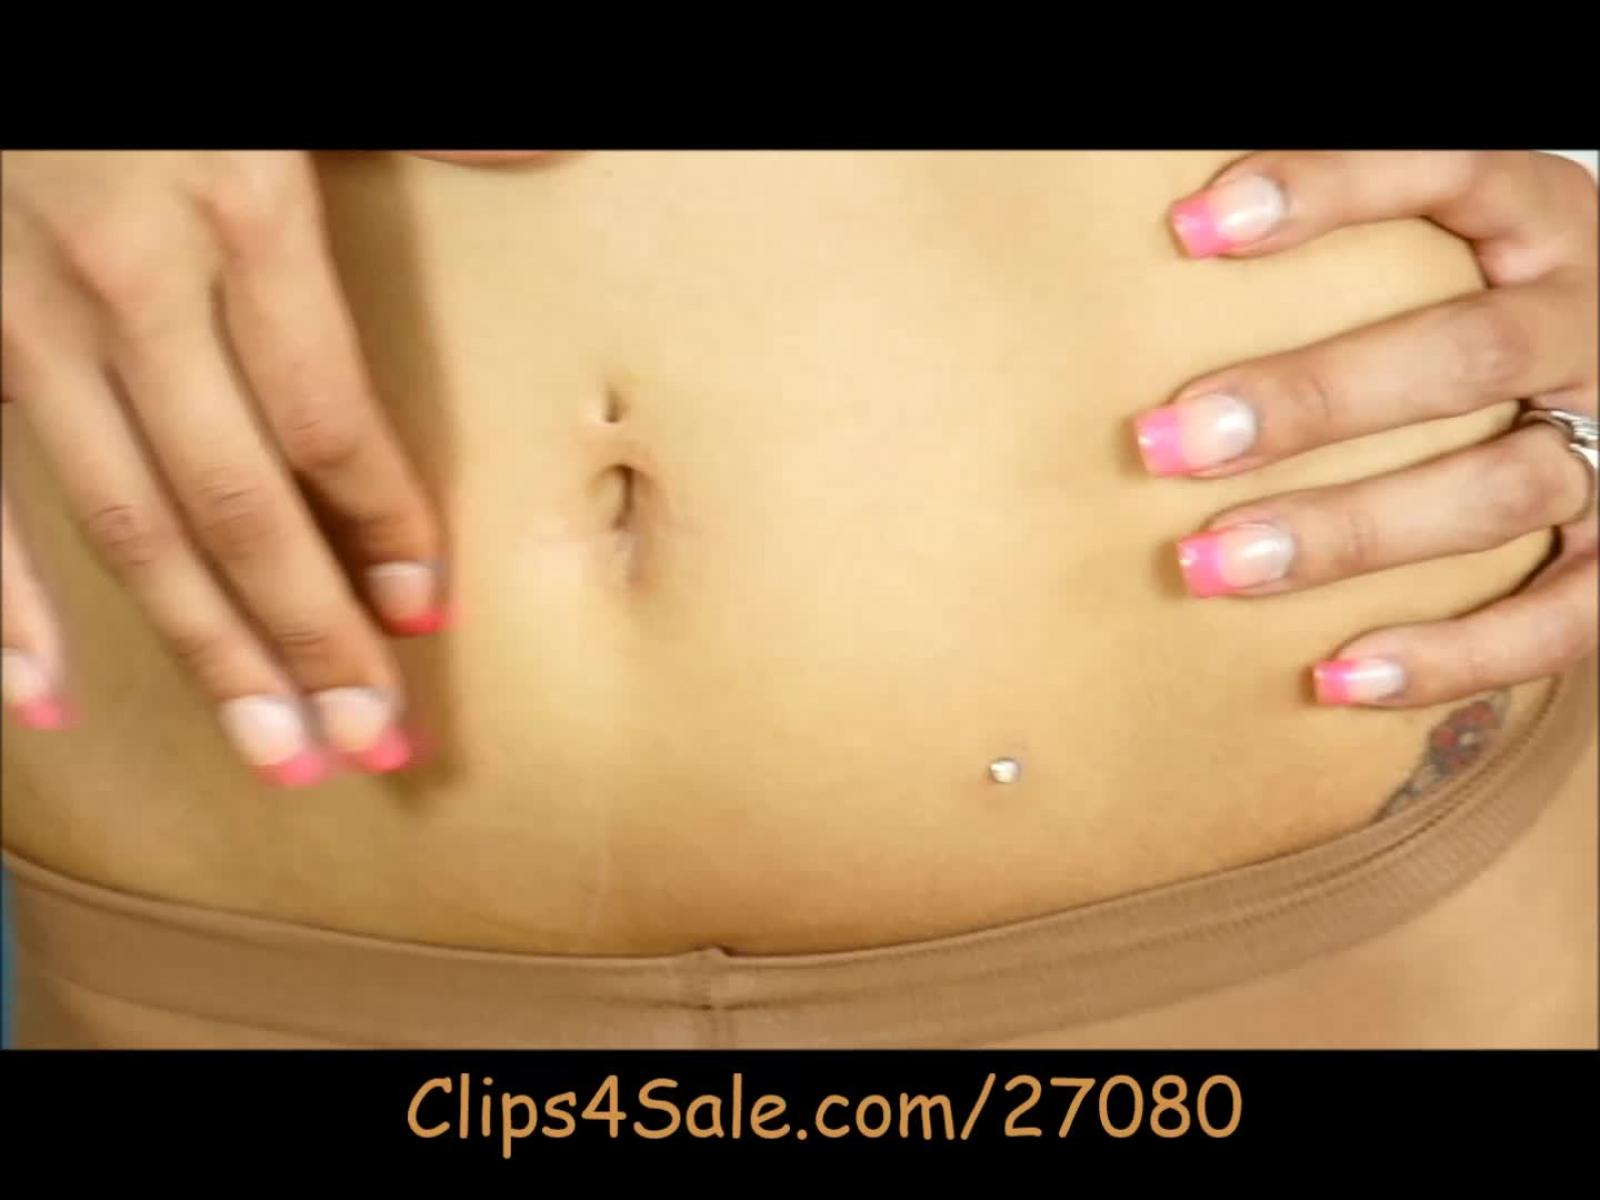 Navel love pics and porn images